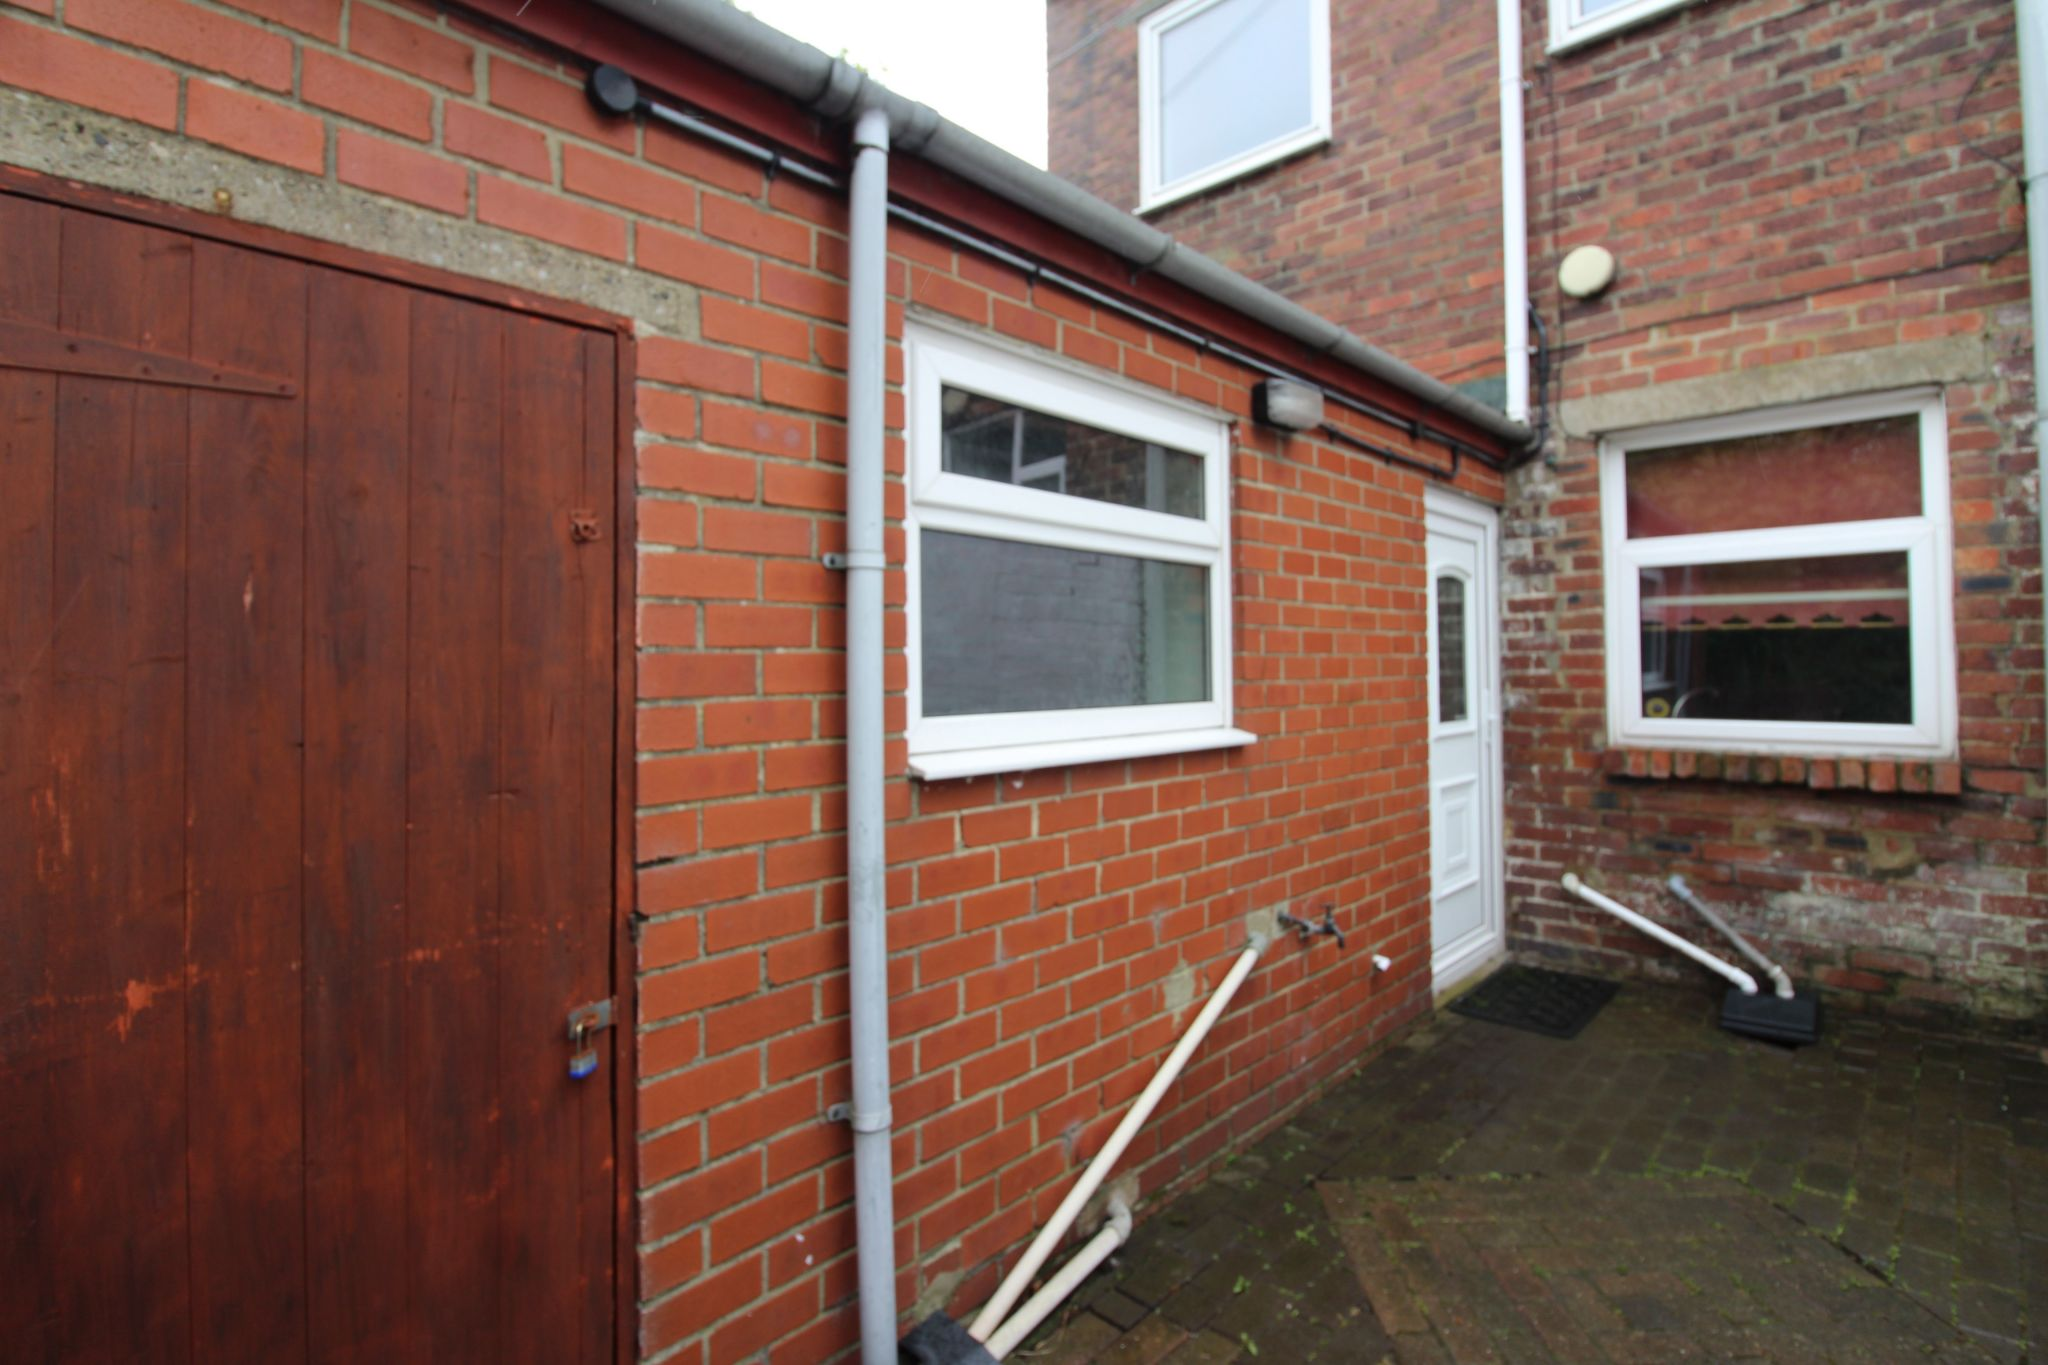 3 bedroom end terraced house For Sale in Willington And Hunwick - Photograph 23.